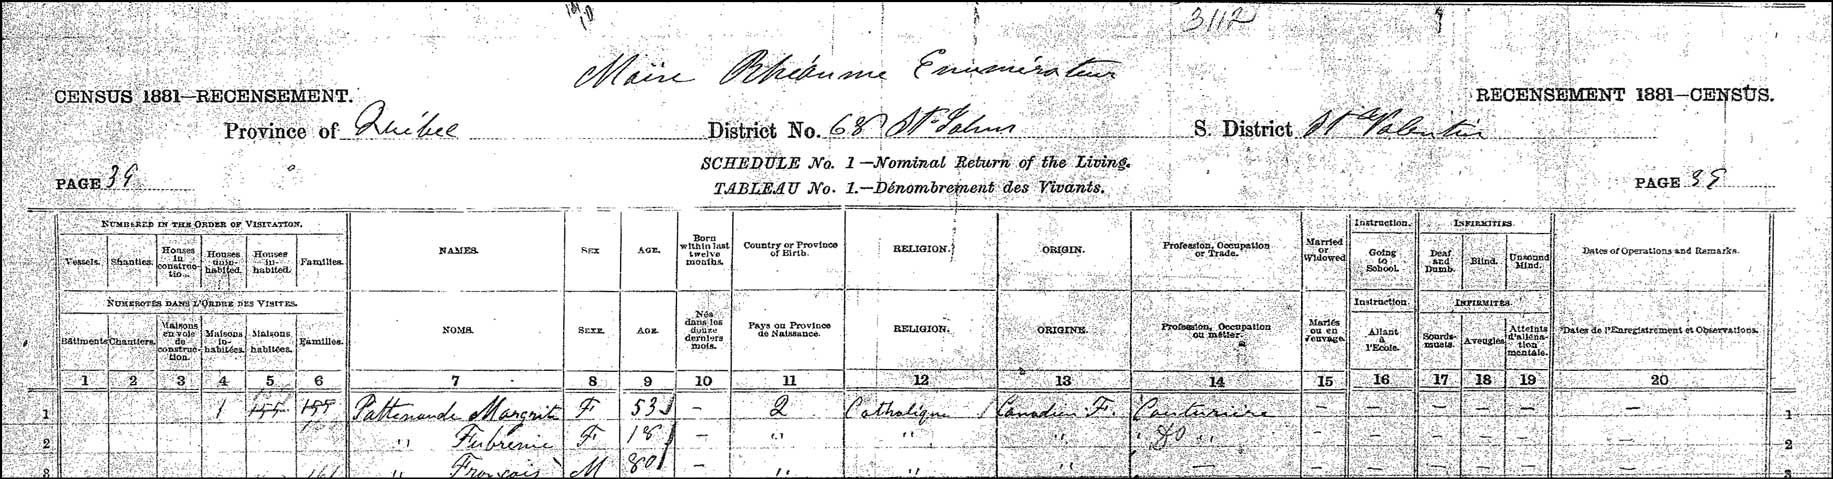 The 1881 Quebec Canada Census Record for Marguerite Patenaude and Family